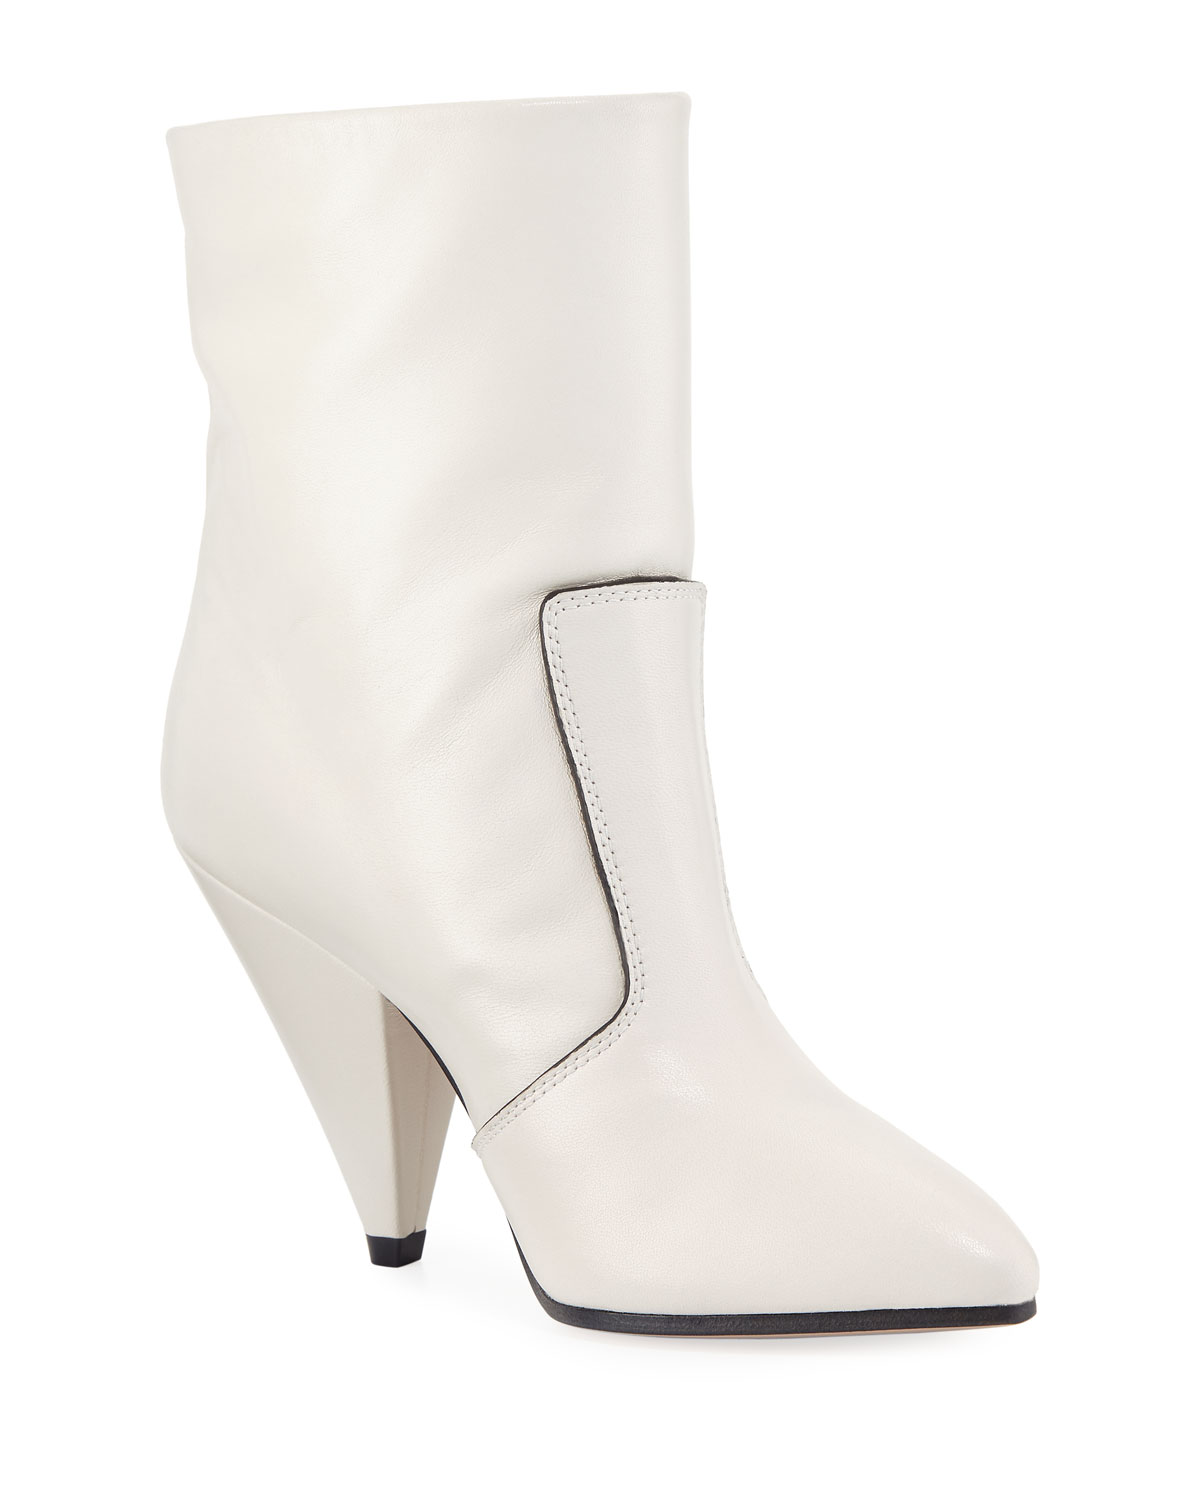 Stuart Weitzman Atomic West Tall Booties, Oyster   Marcus Neiman Marcus  e5c1d0